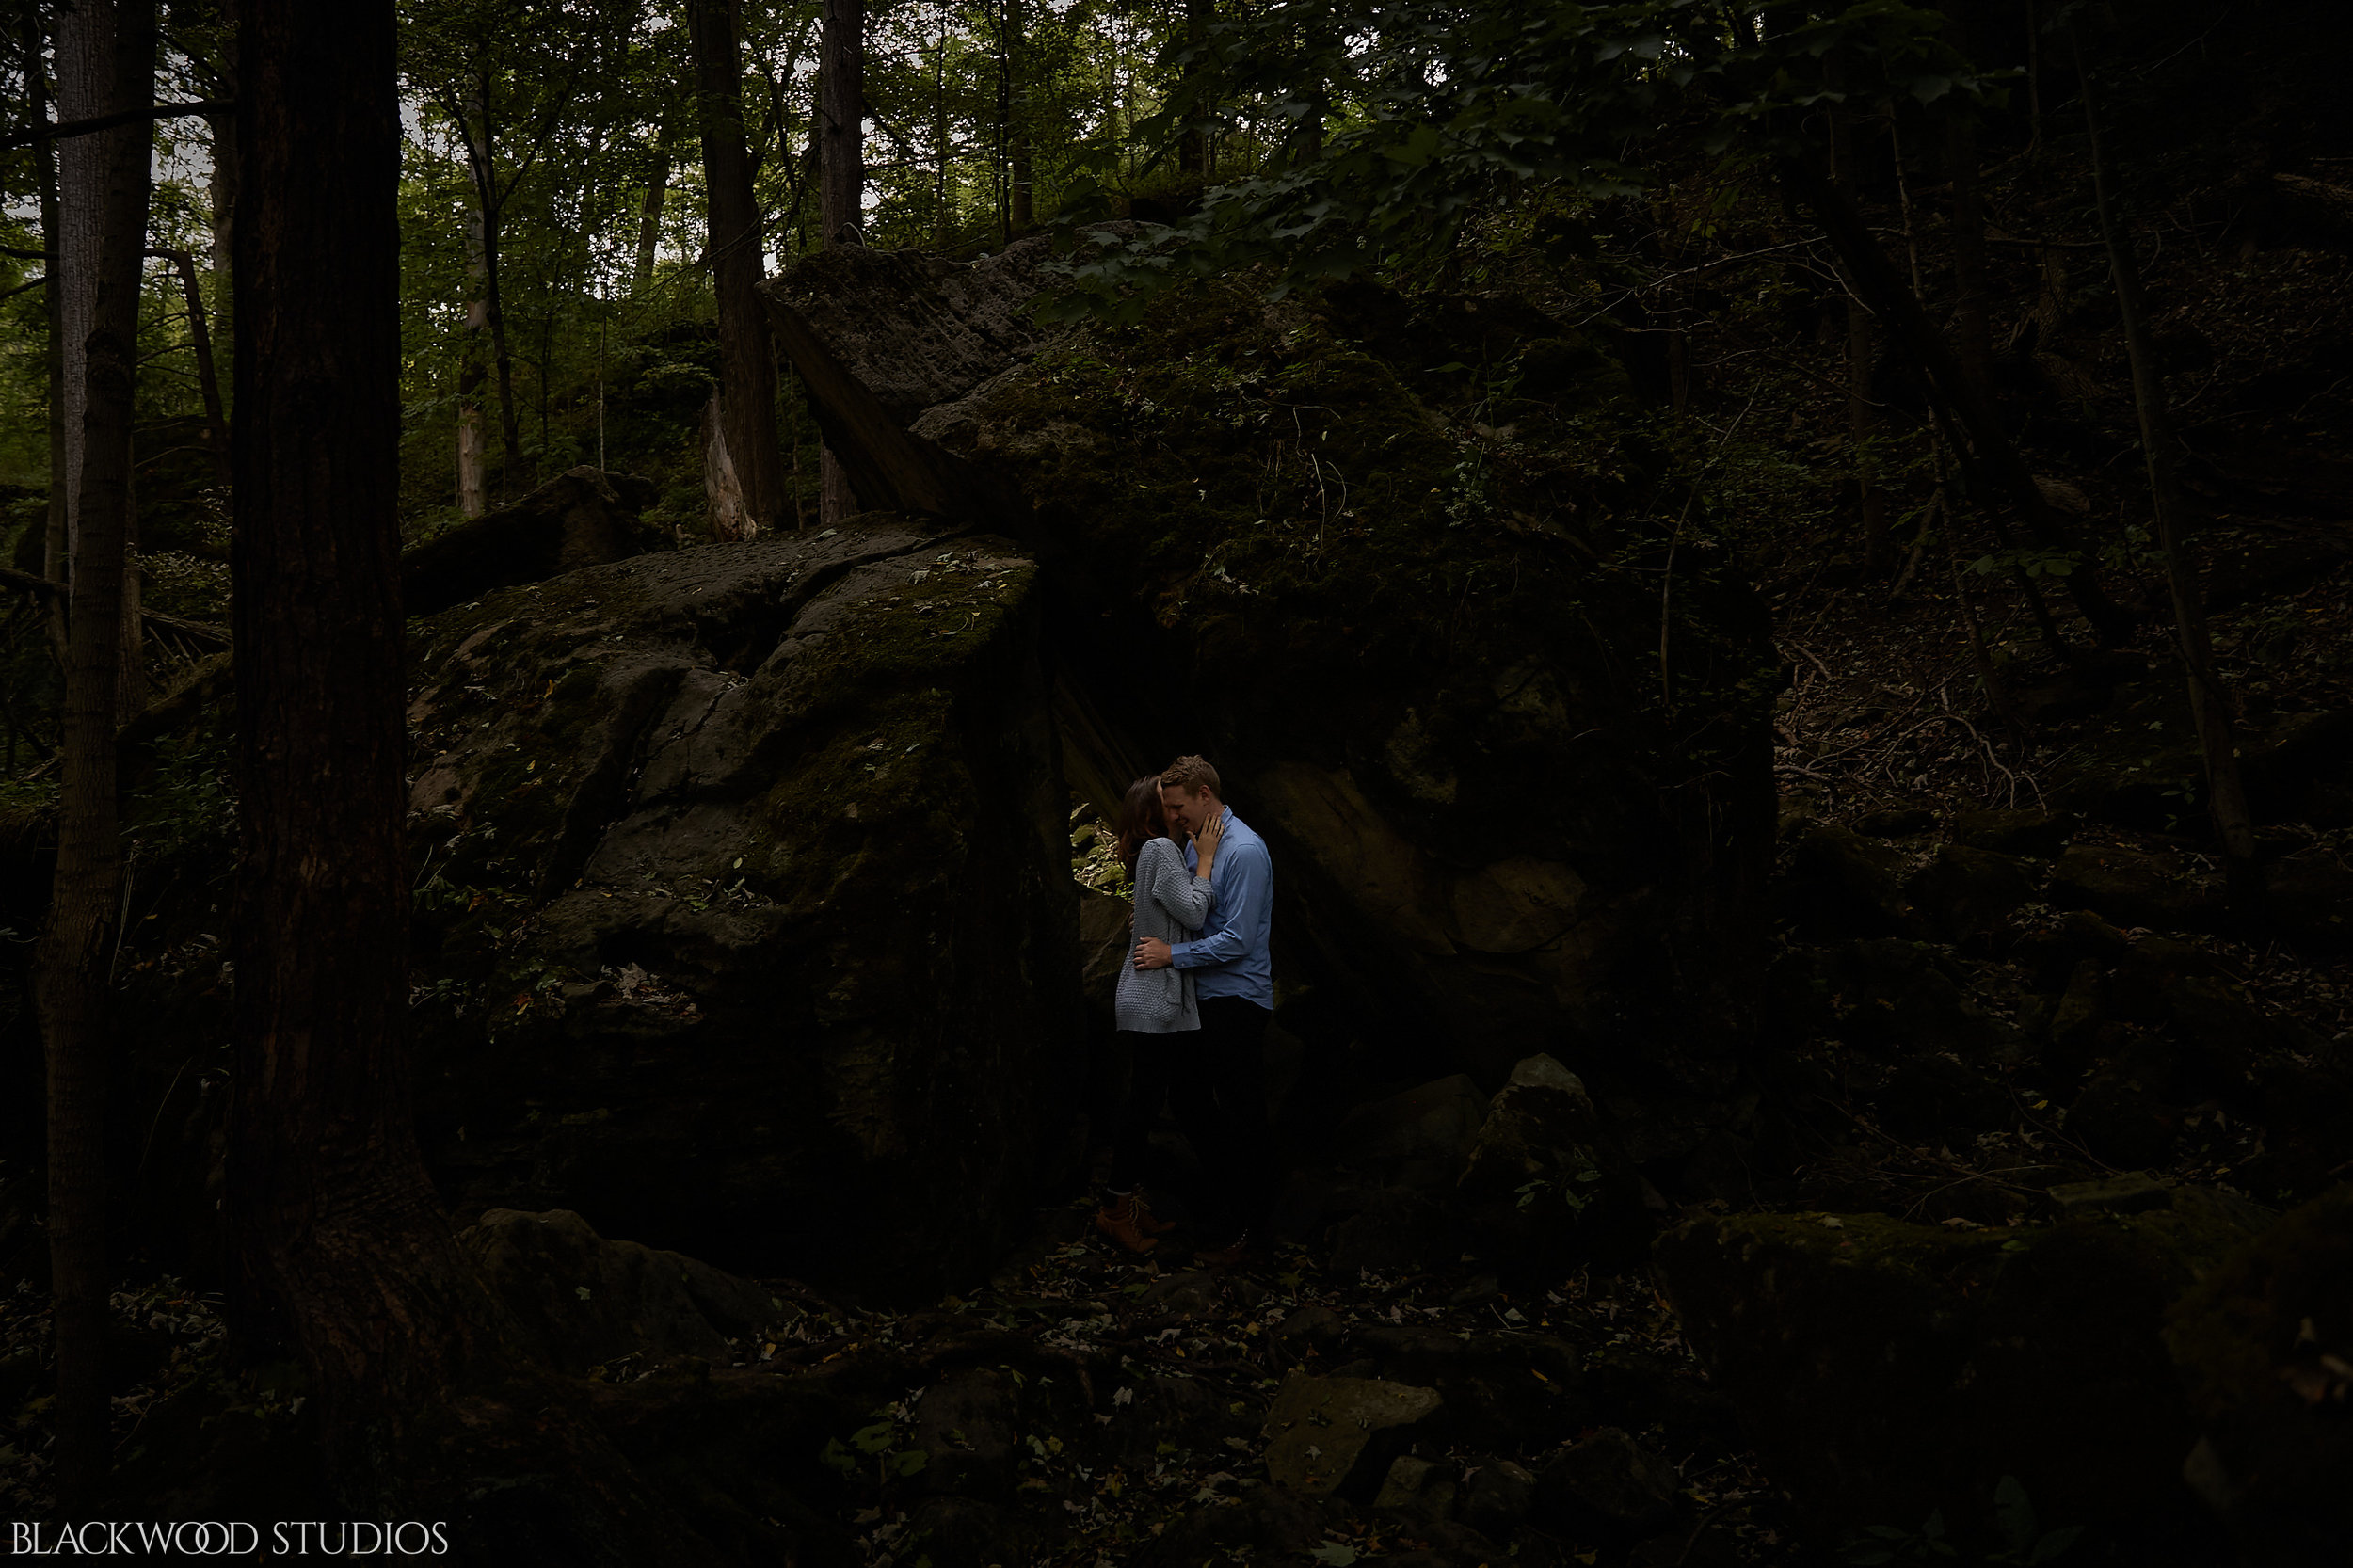 Blackwood-Studios-photography-20180922-183205-Jeff-and-Raven-Engagement-0449-Balls-Falls-Conservation-Area-Lincoln-Niagara-Ontario.jpg